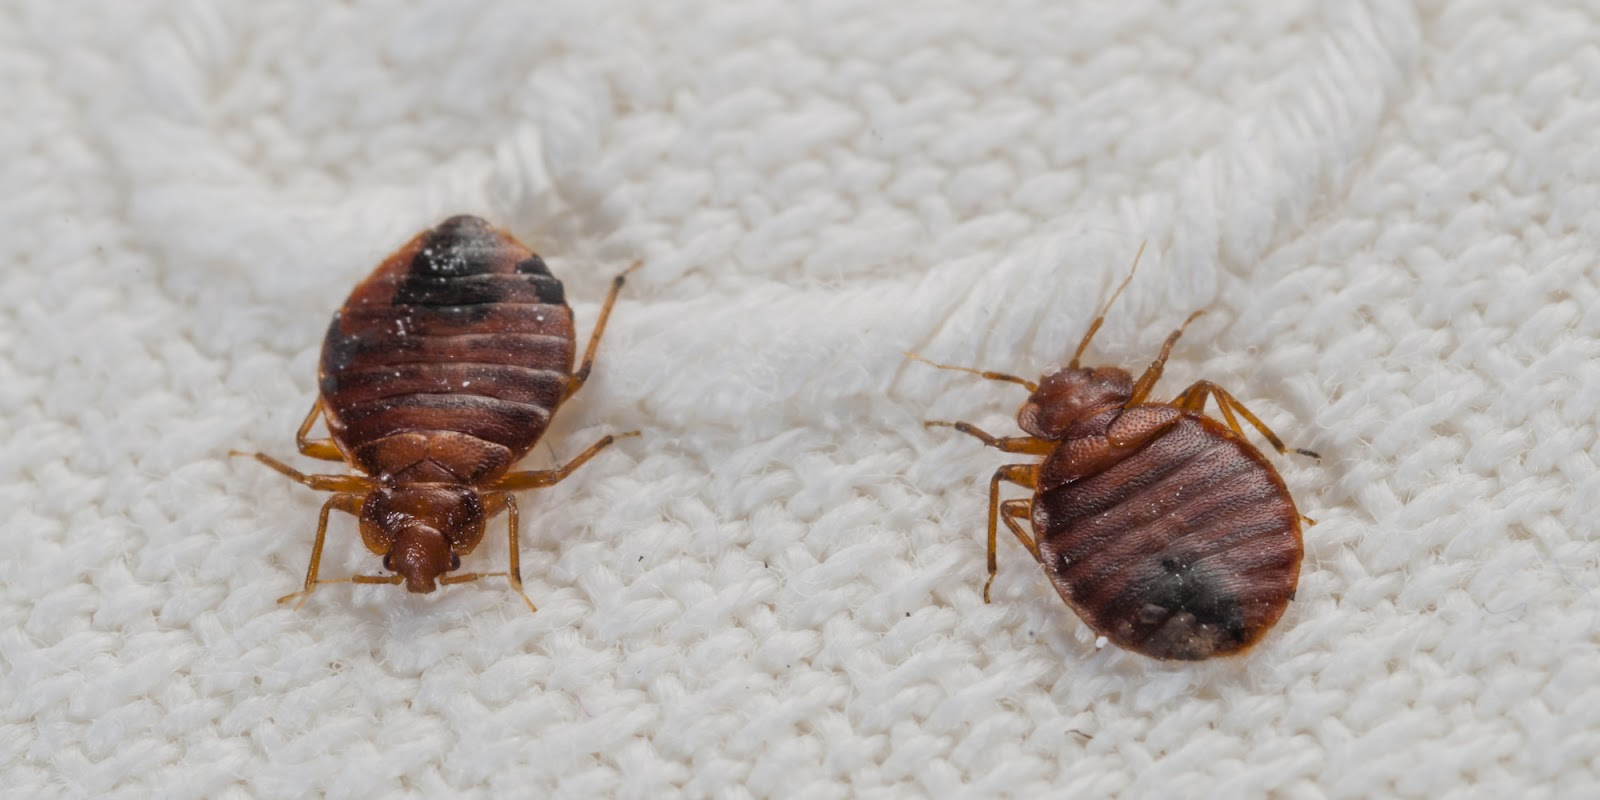 BEDBUG  CONTROL TIPS AND TRICKS by new star pest control service.